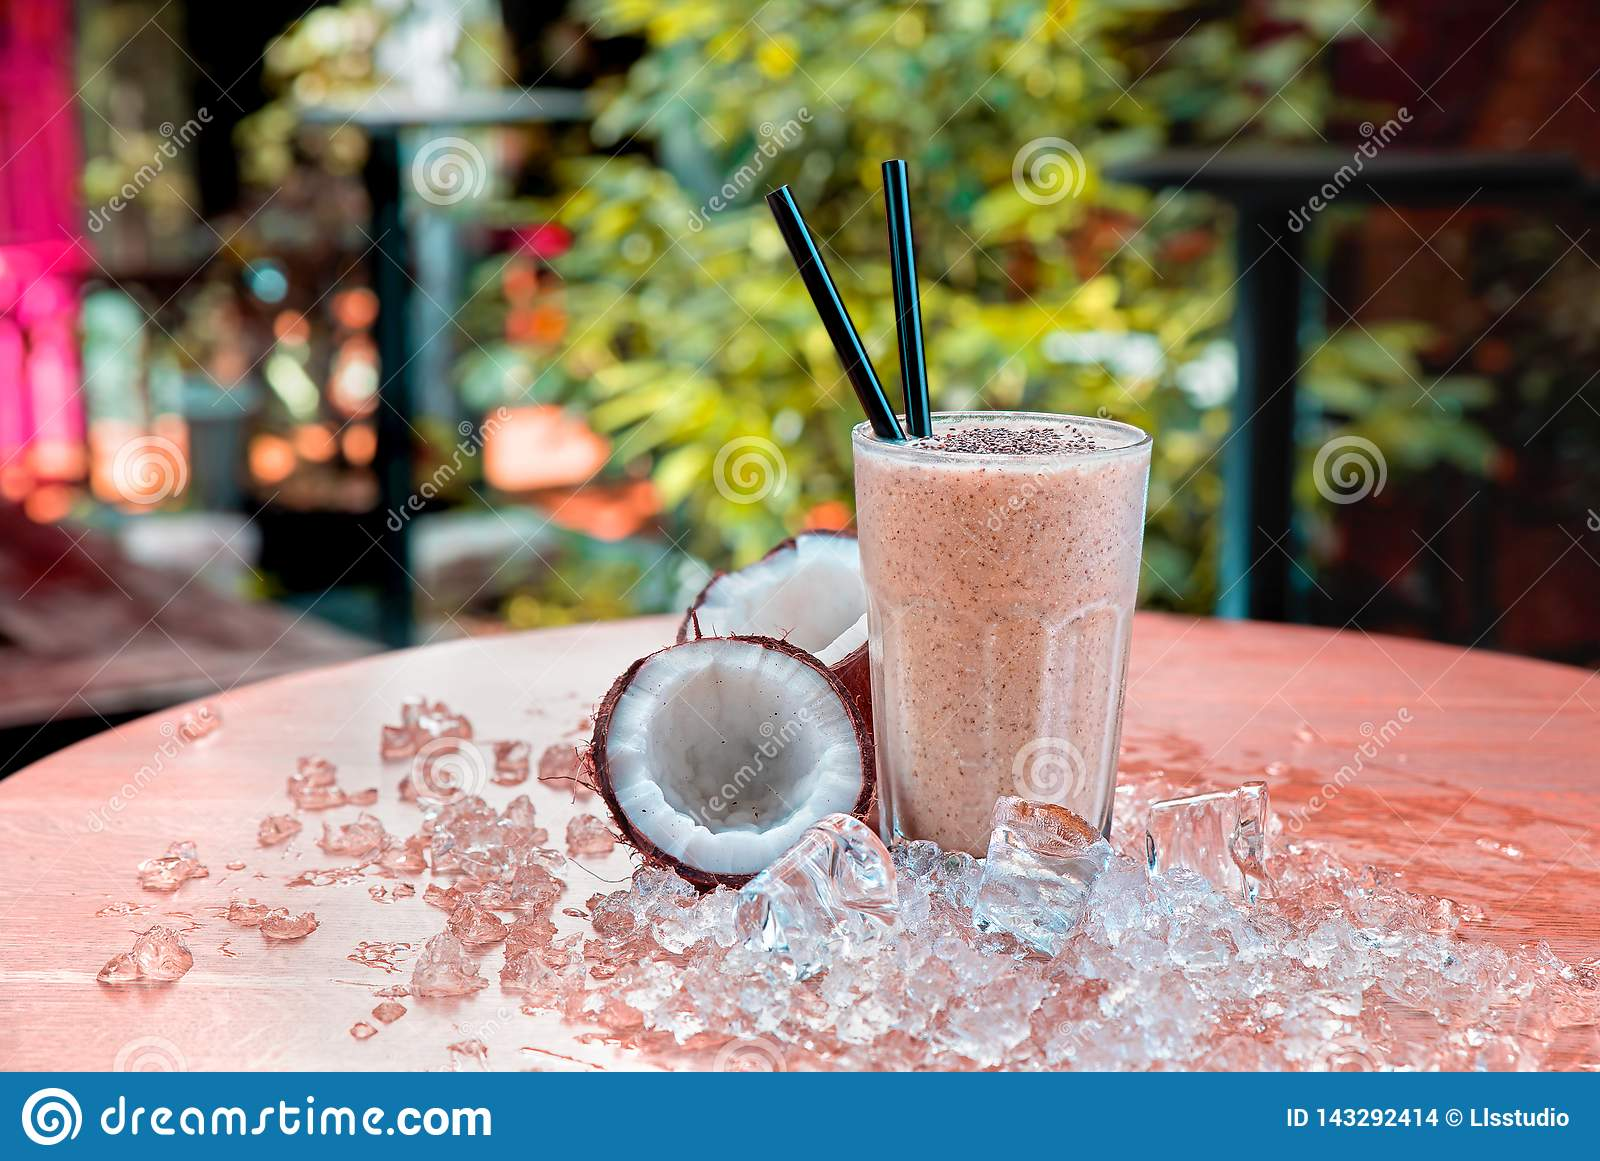 Homemade chocolate shake with coconut and chia seeds